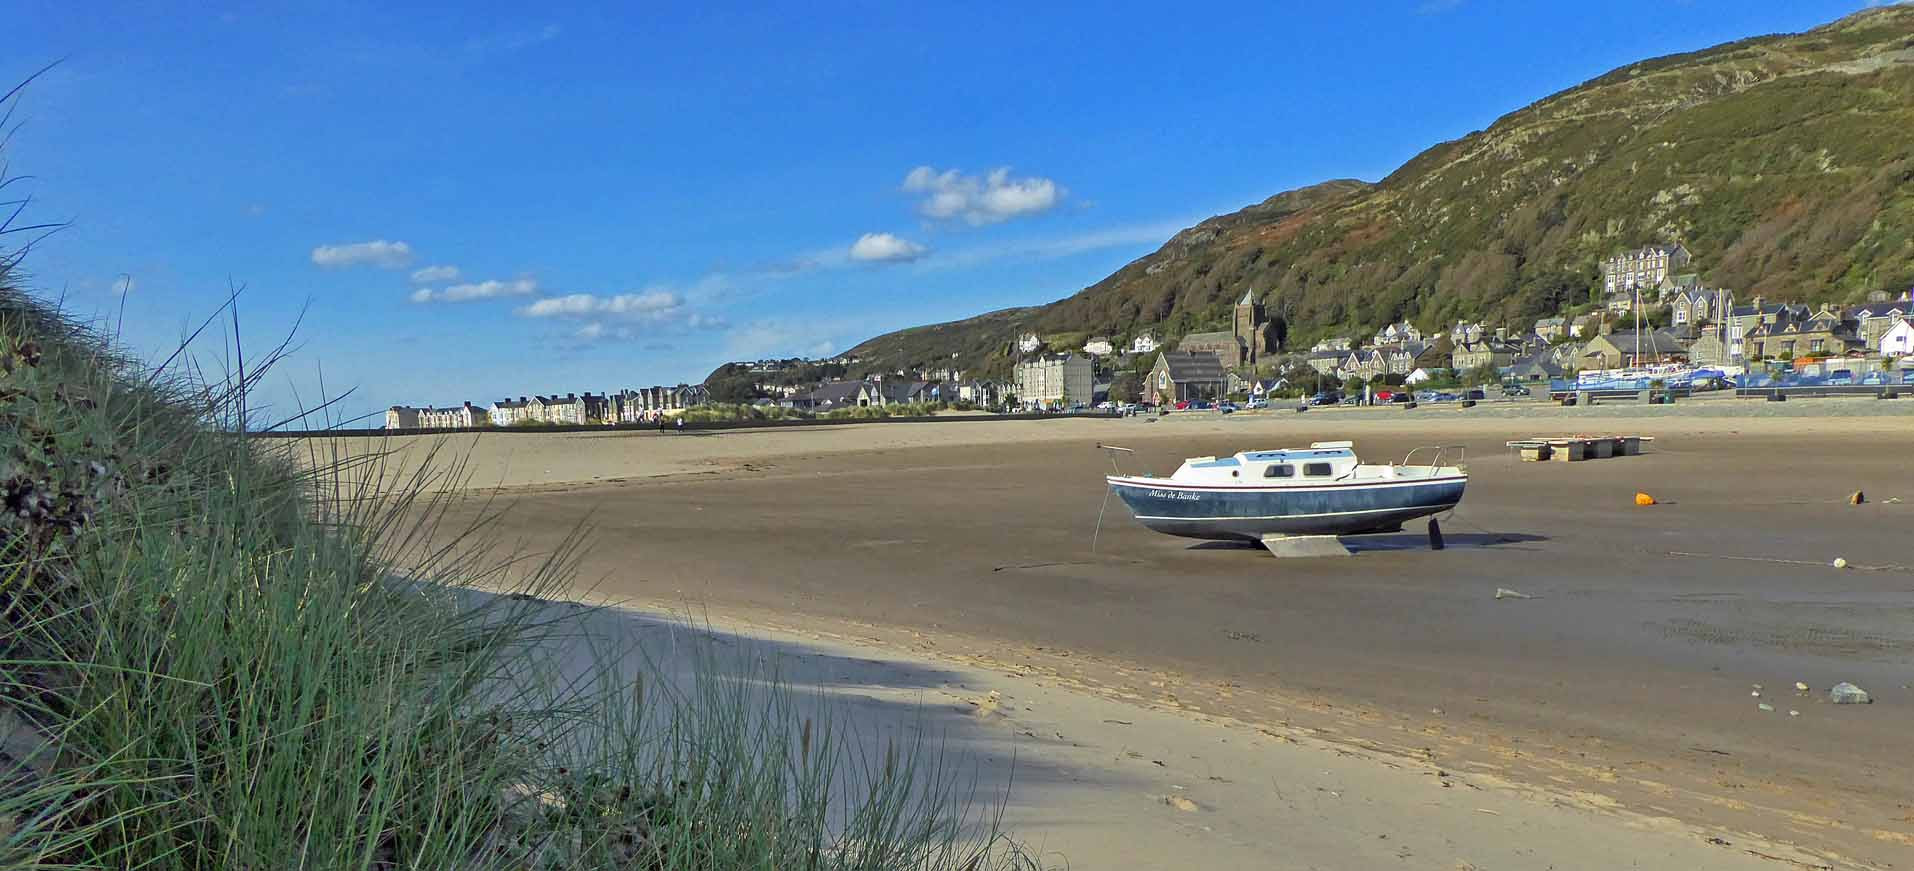 Barmouth inner harbour and promenade